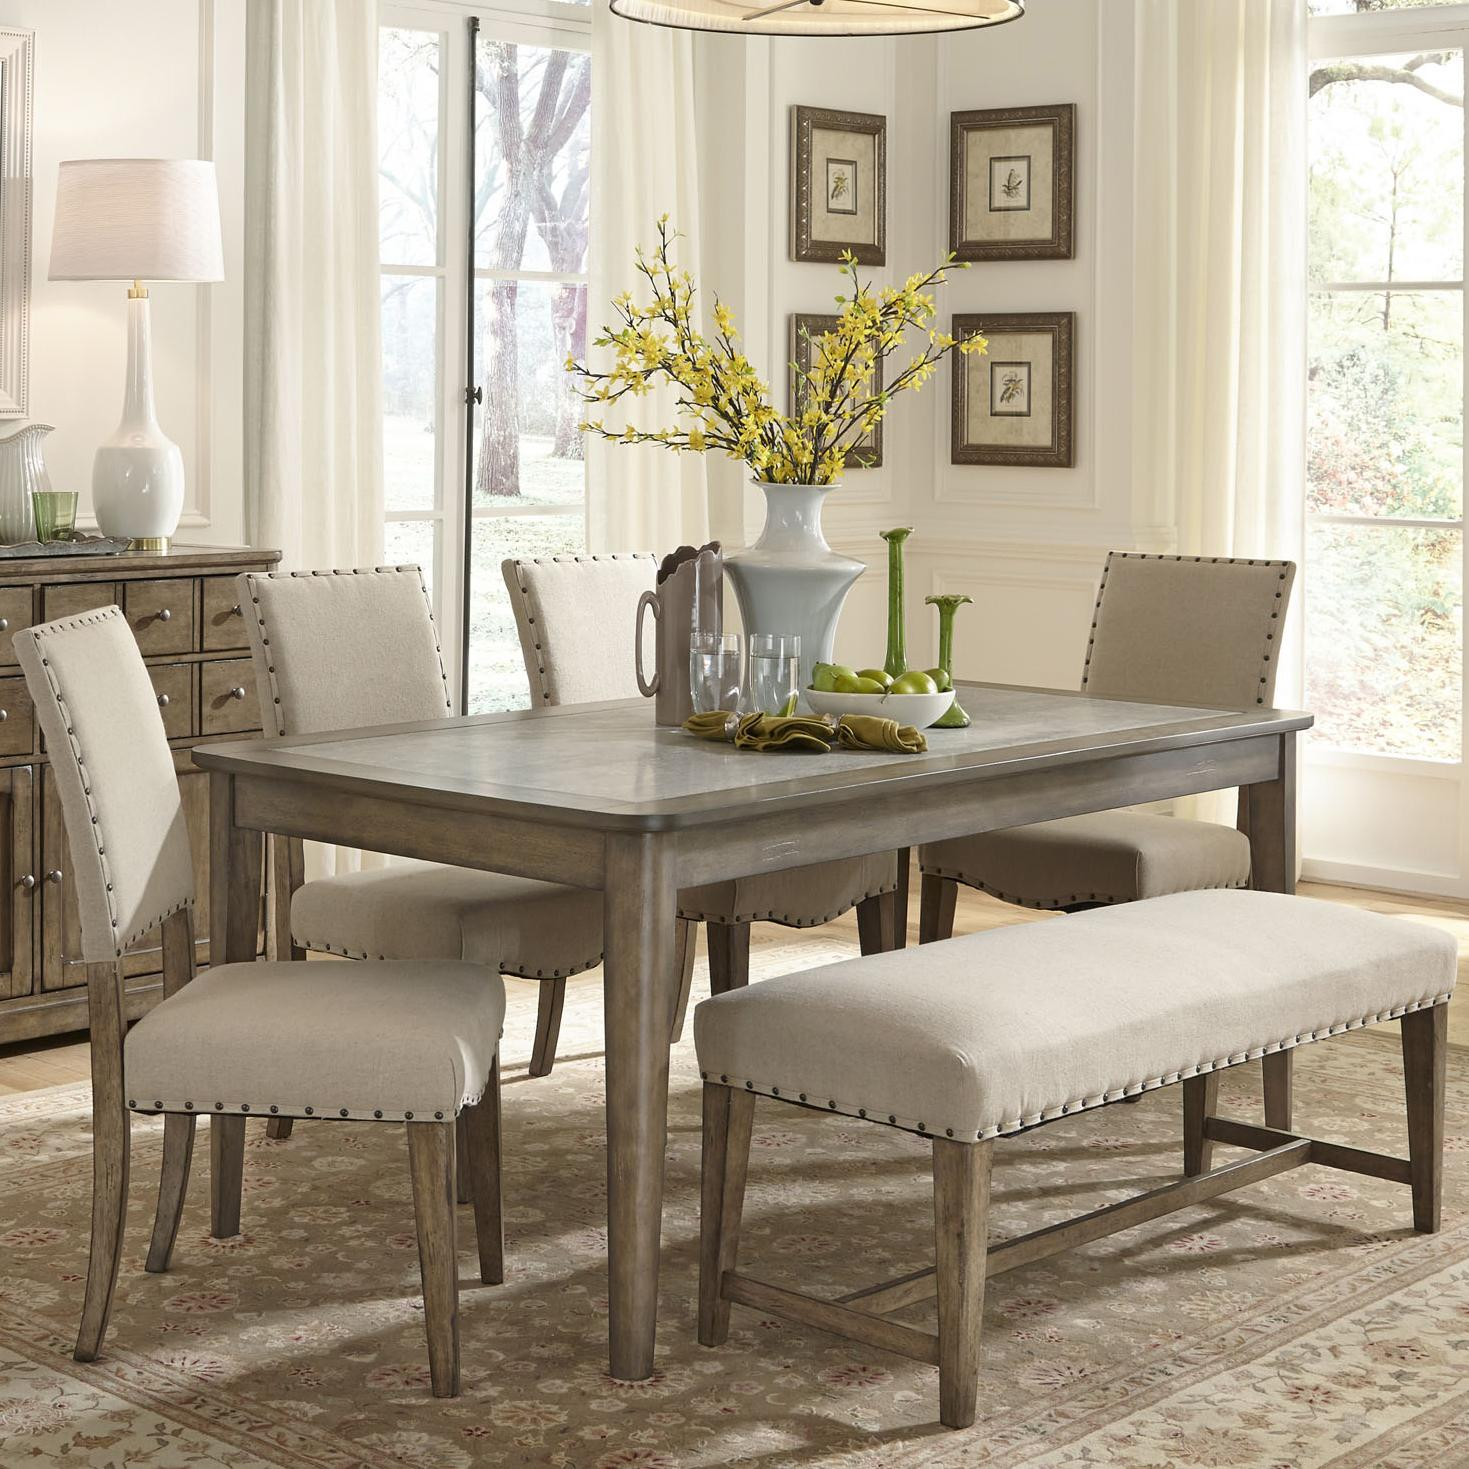 Dining Room Benches Upholstered - Home Design Ideas - http://www ...